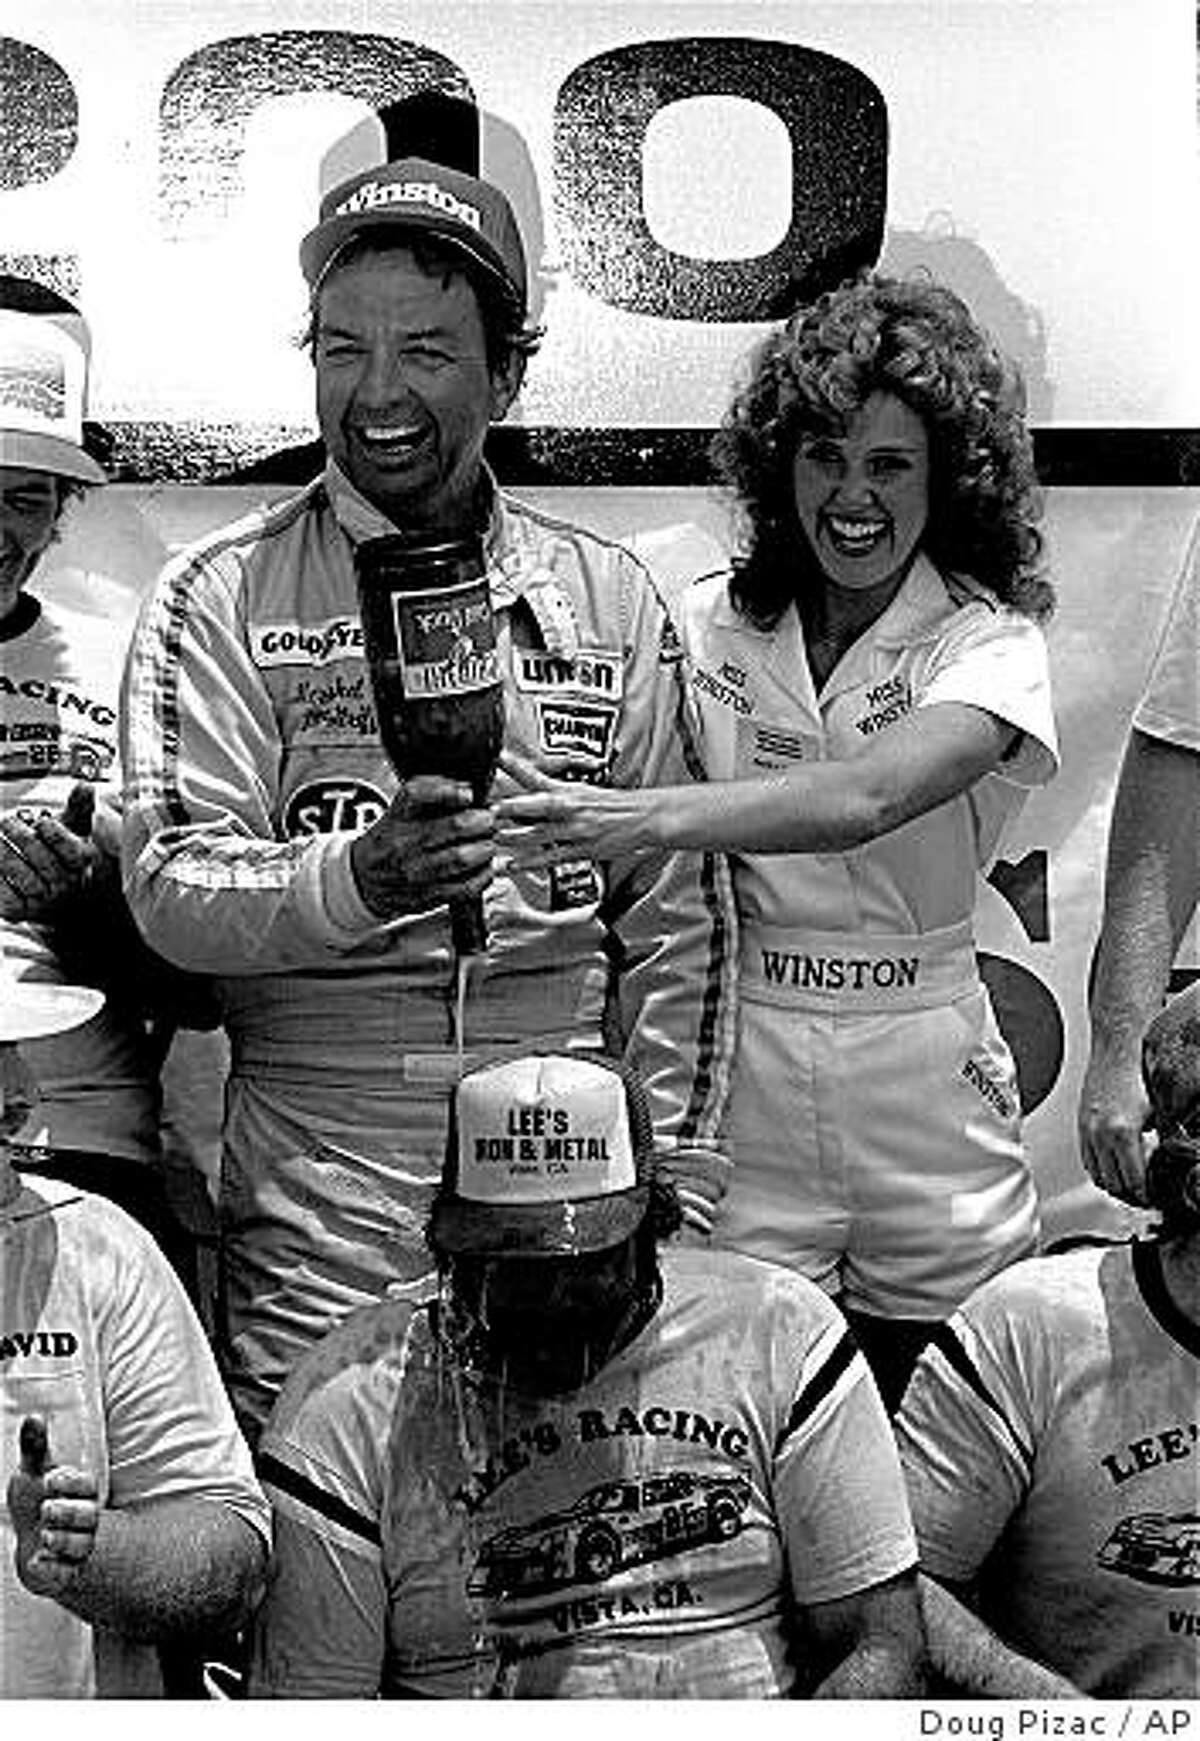 Hershel McGriff, left, of Bridal Veil, Ore., empties a bottle of Cold Duck over the head of crew member Snow Thornsberry with the help of Miss Winston Becky Carter after winning the Warner Hodgdon 200 NASCAR race at Riverside Raceway . (AP Photo/Doug Pizac)